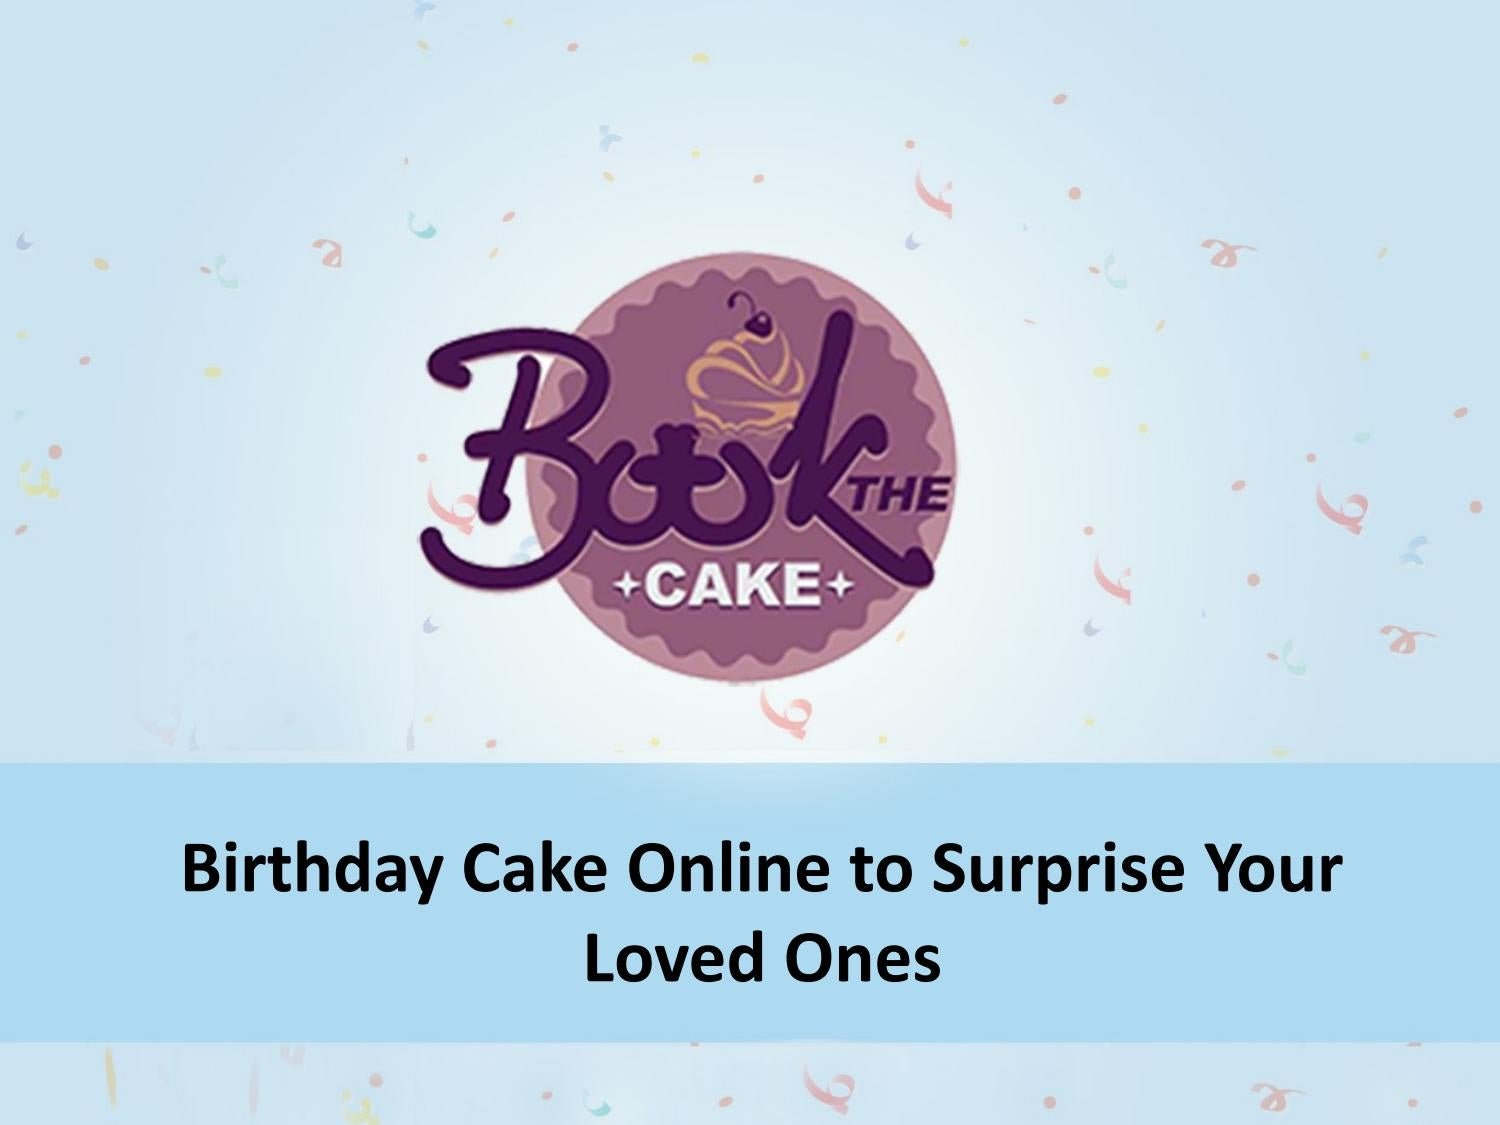 Admirable Send Birthday Cakes Online To Surprise Your Near And Dear Ones By Funny Birthday Cards Online Fluifree Goldxyz